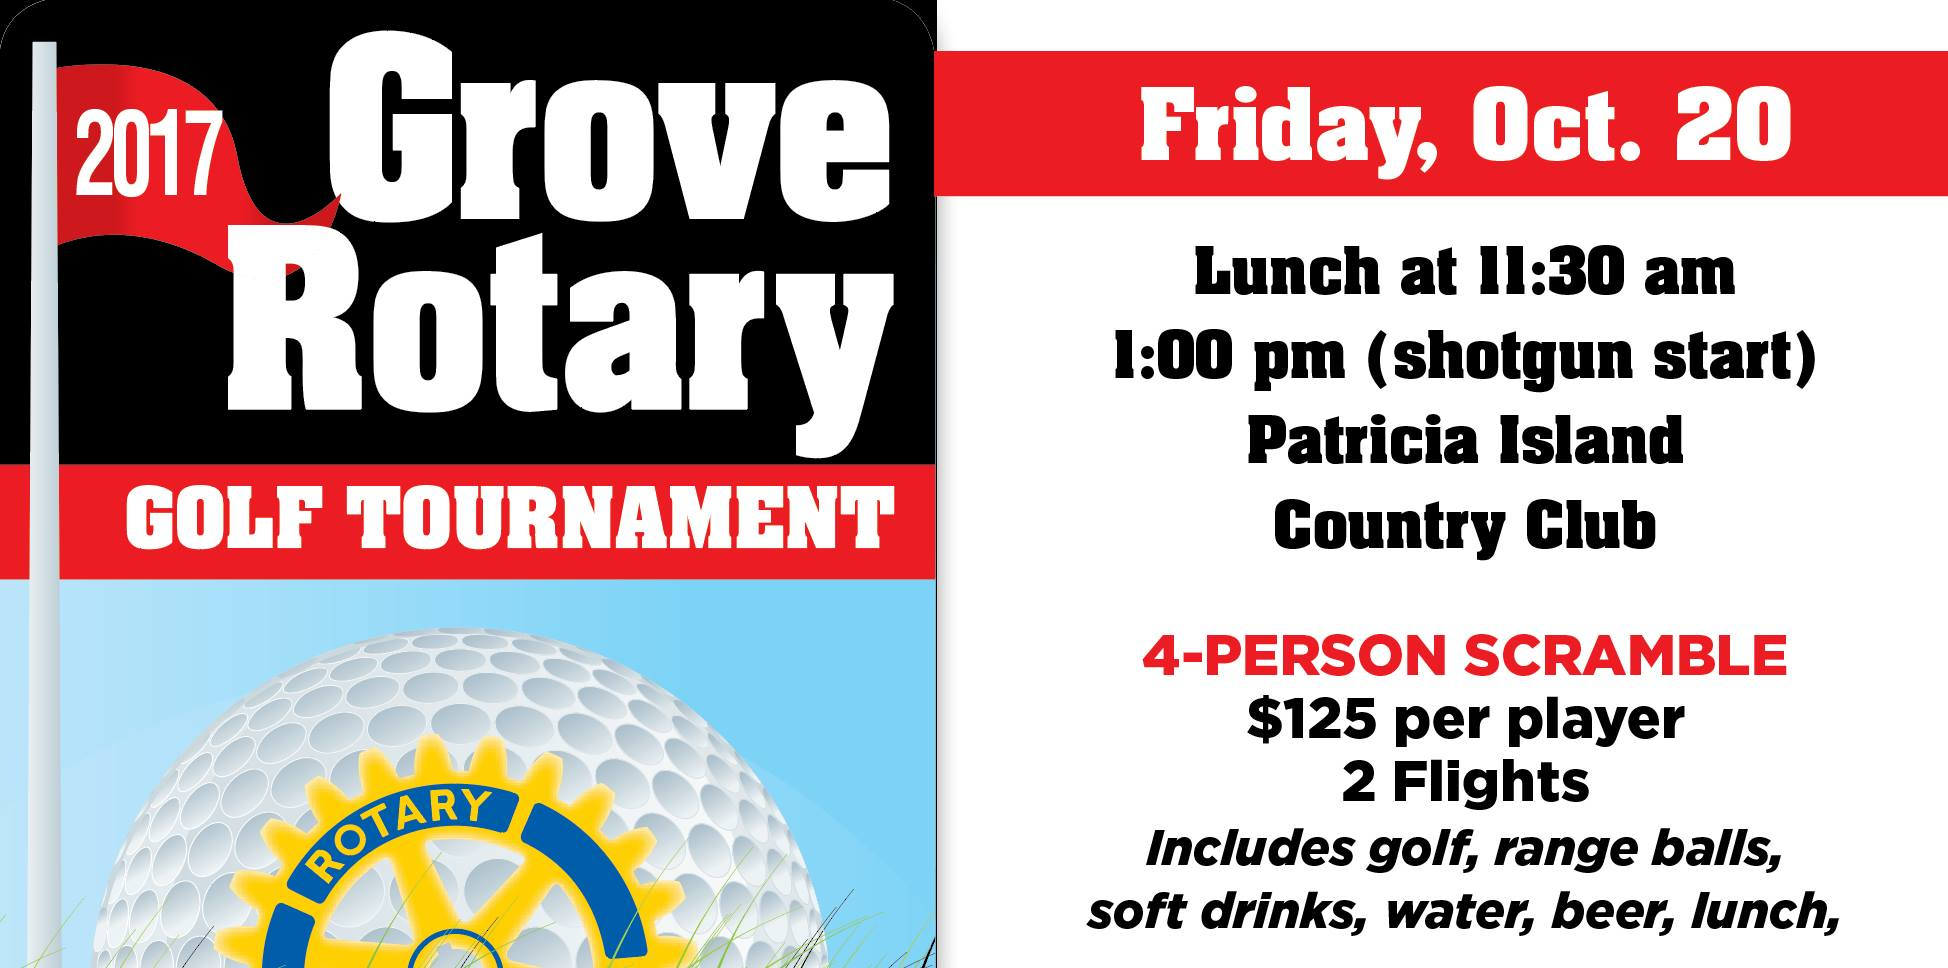 2017 Grove Rotary Golf Tournament